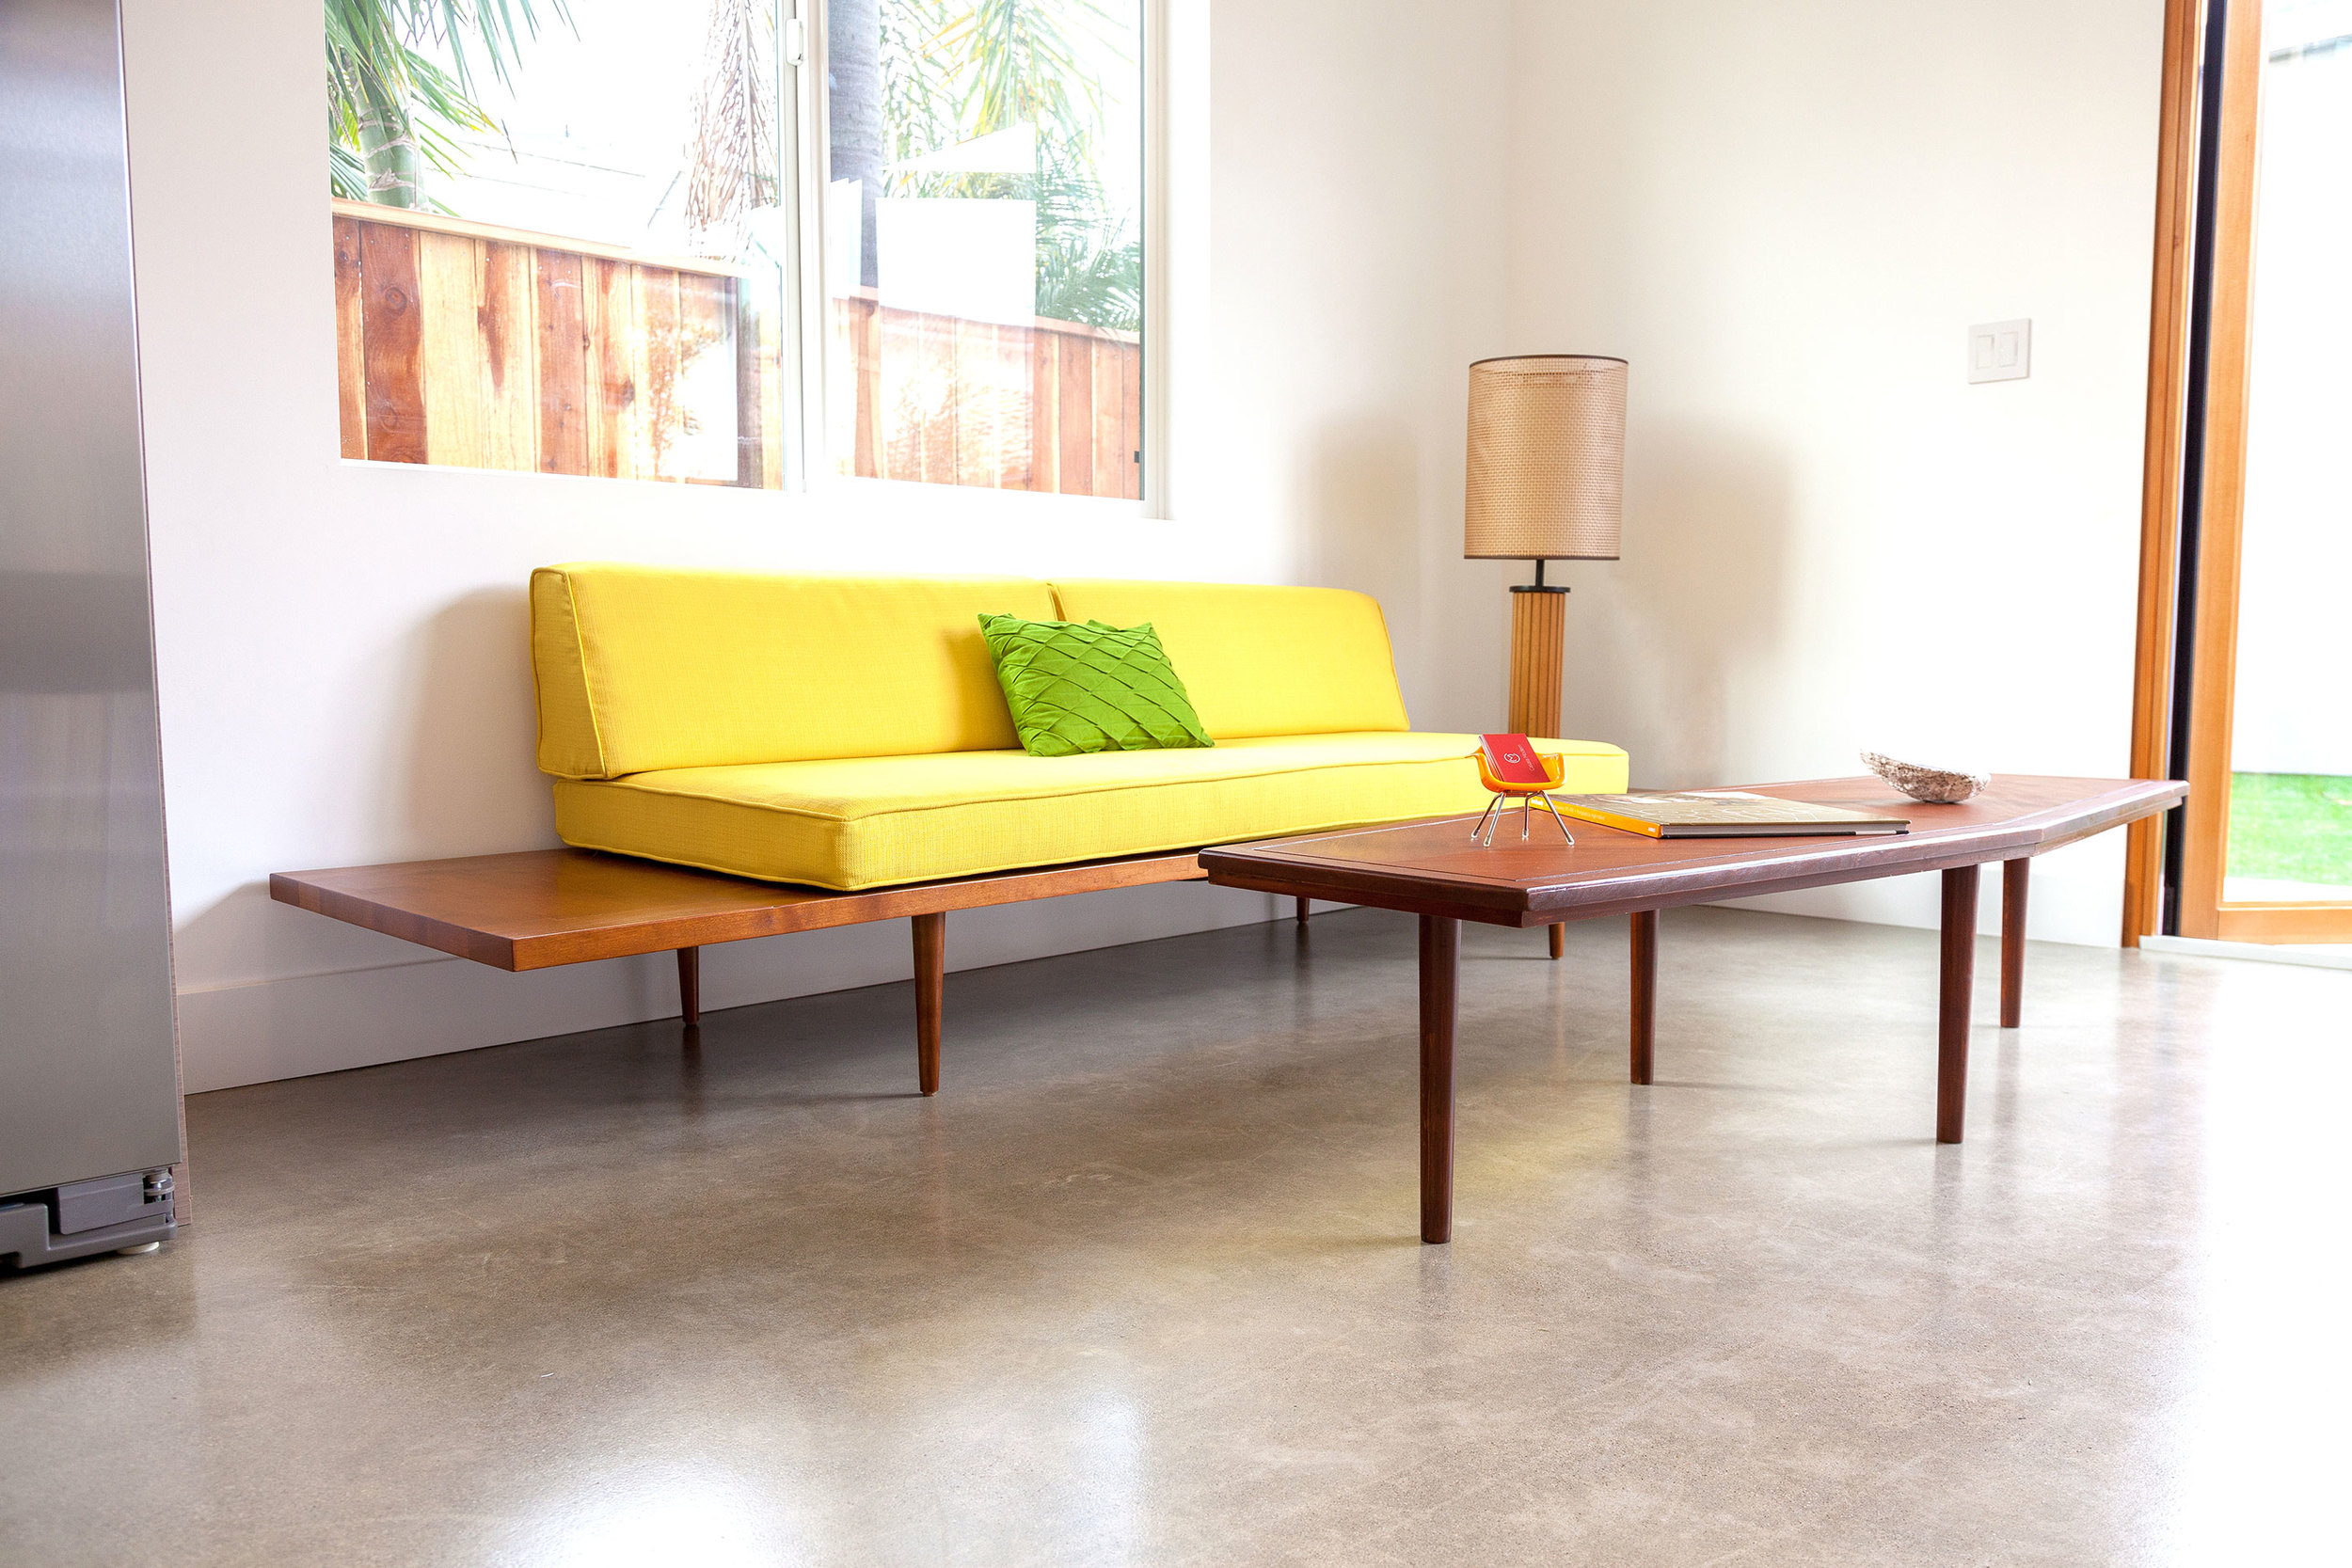 horizon daybed sofa - Modern Daybed